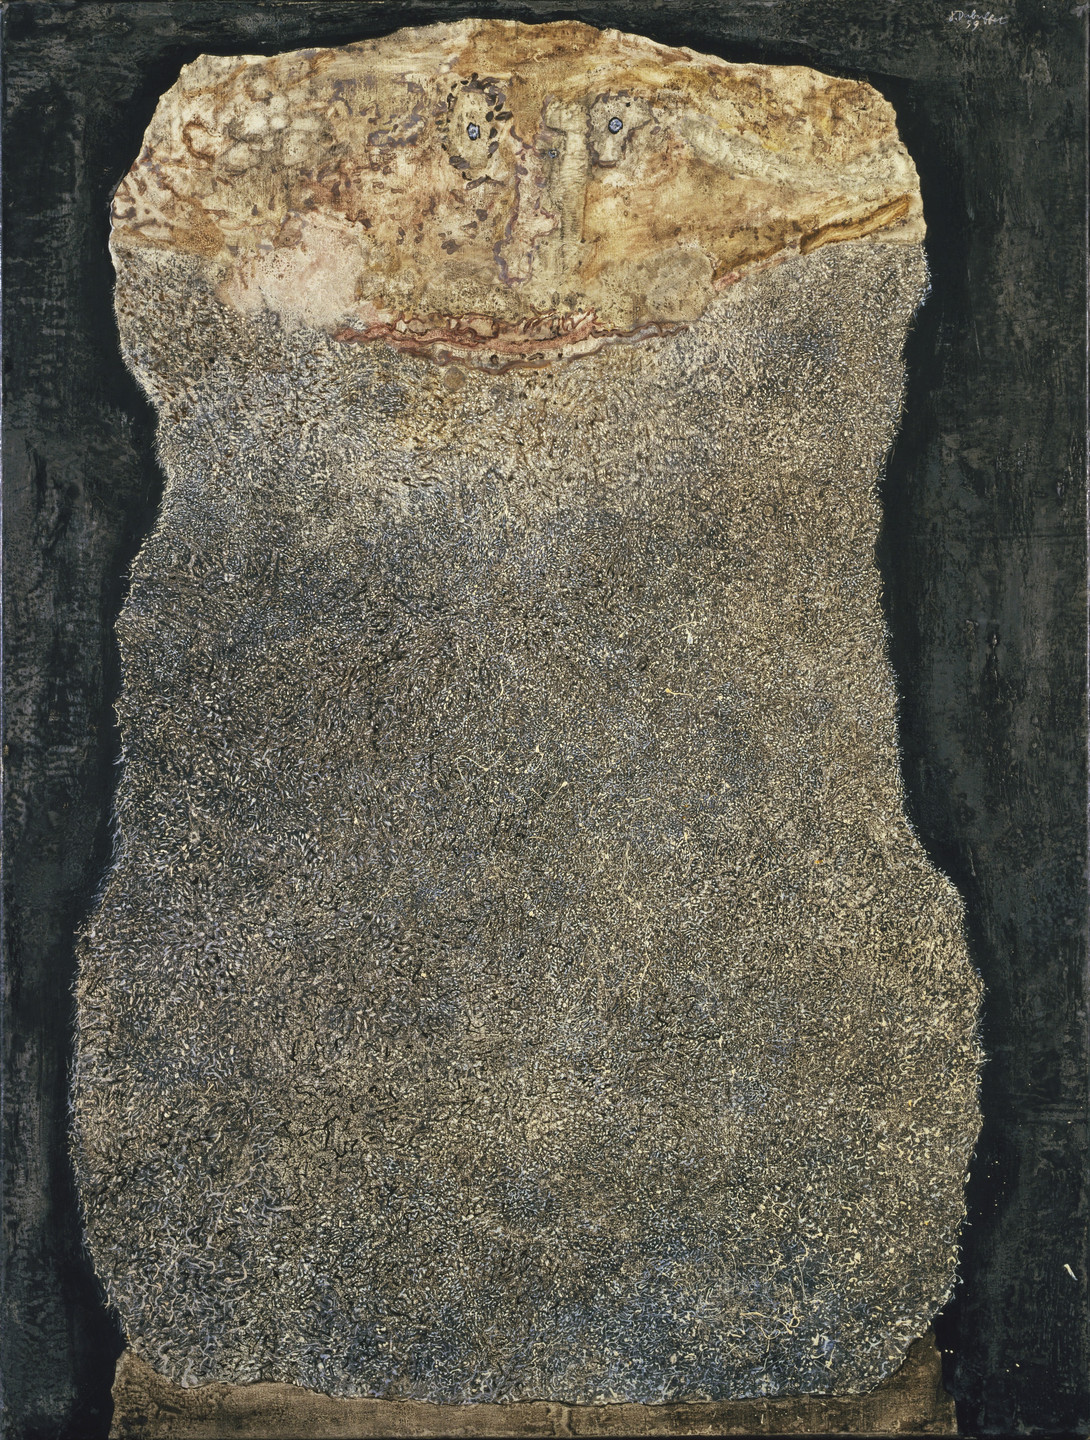 Jean Dubuffet. Beard of Uncertain Returns. November 1959